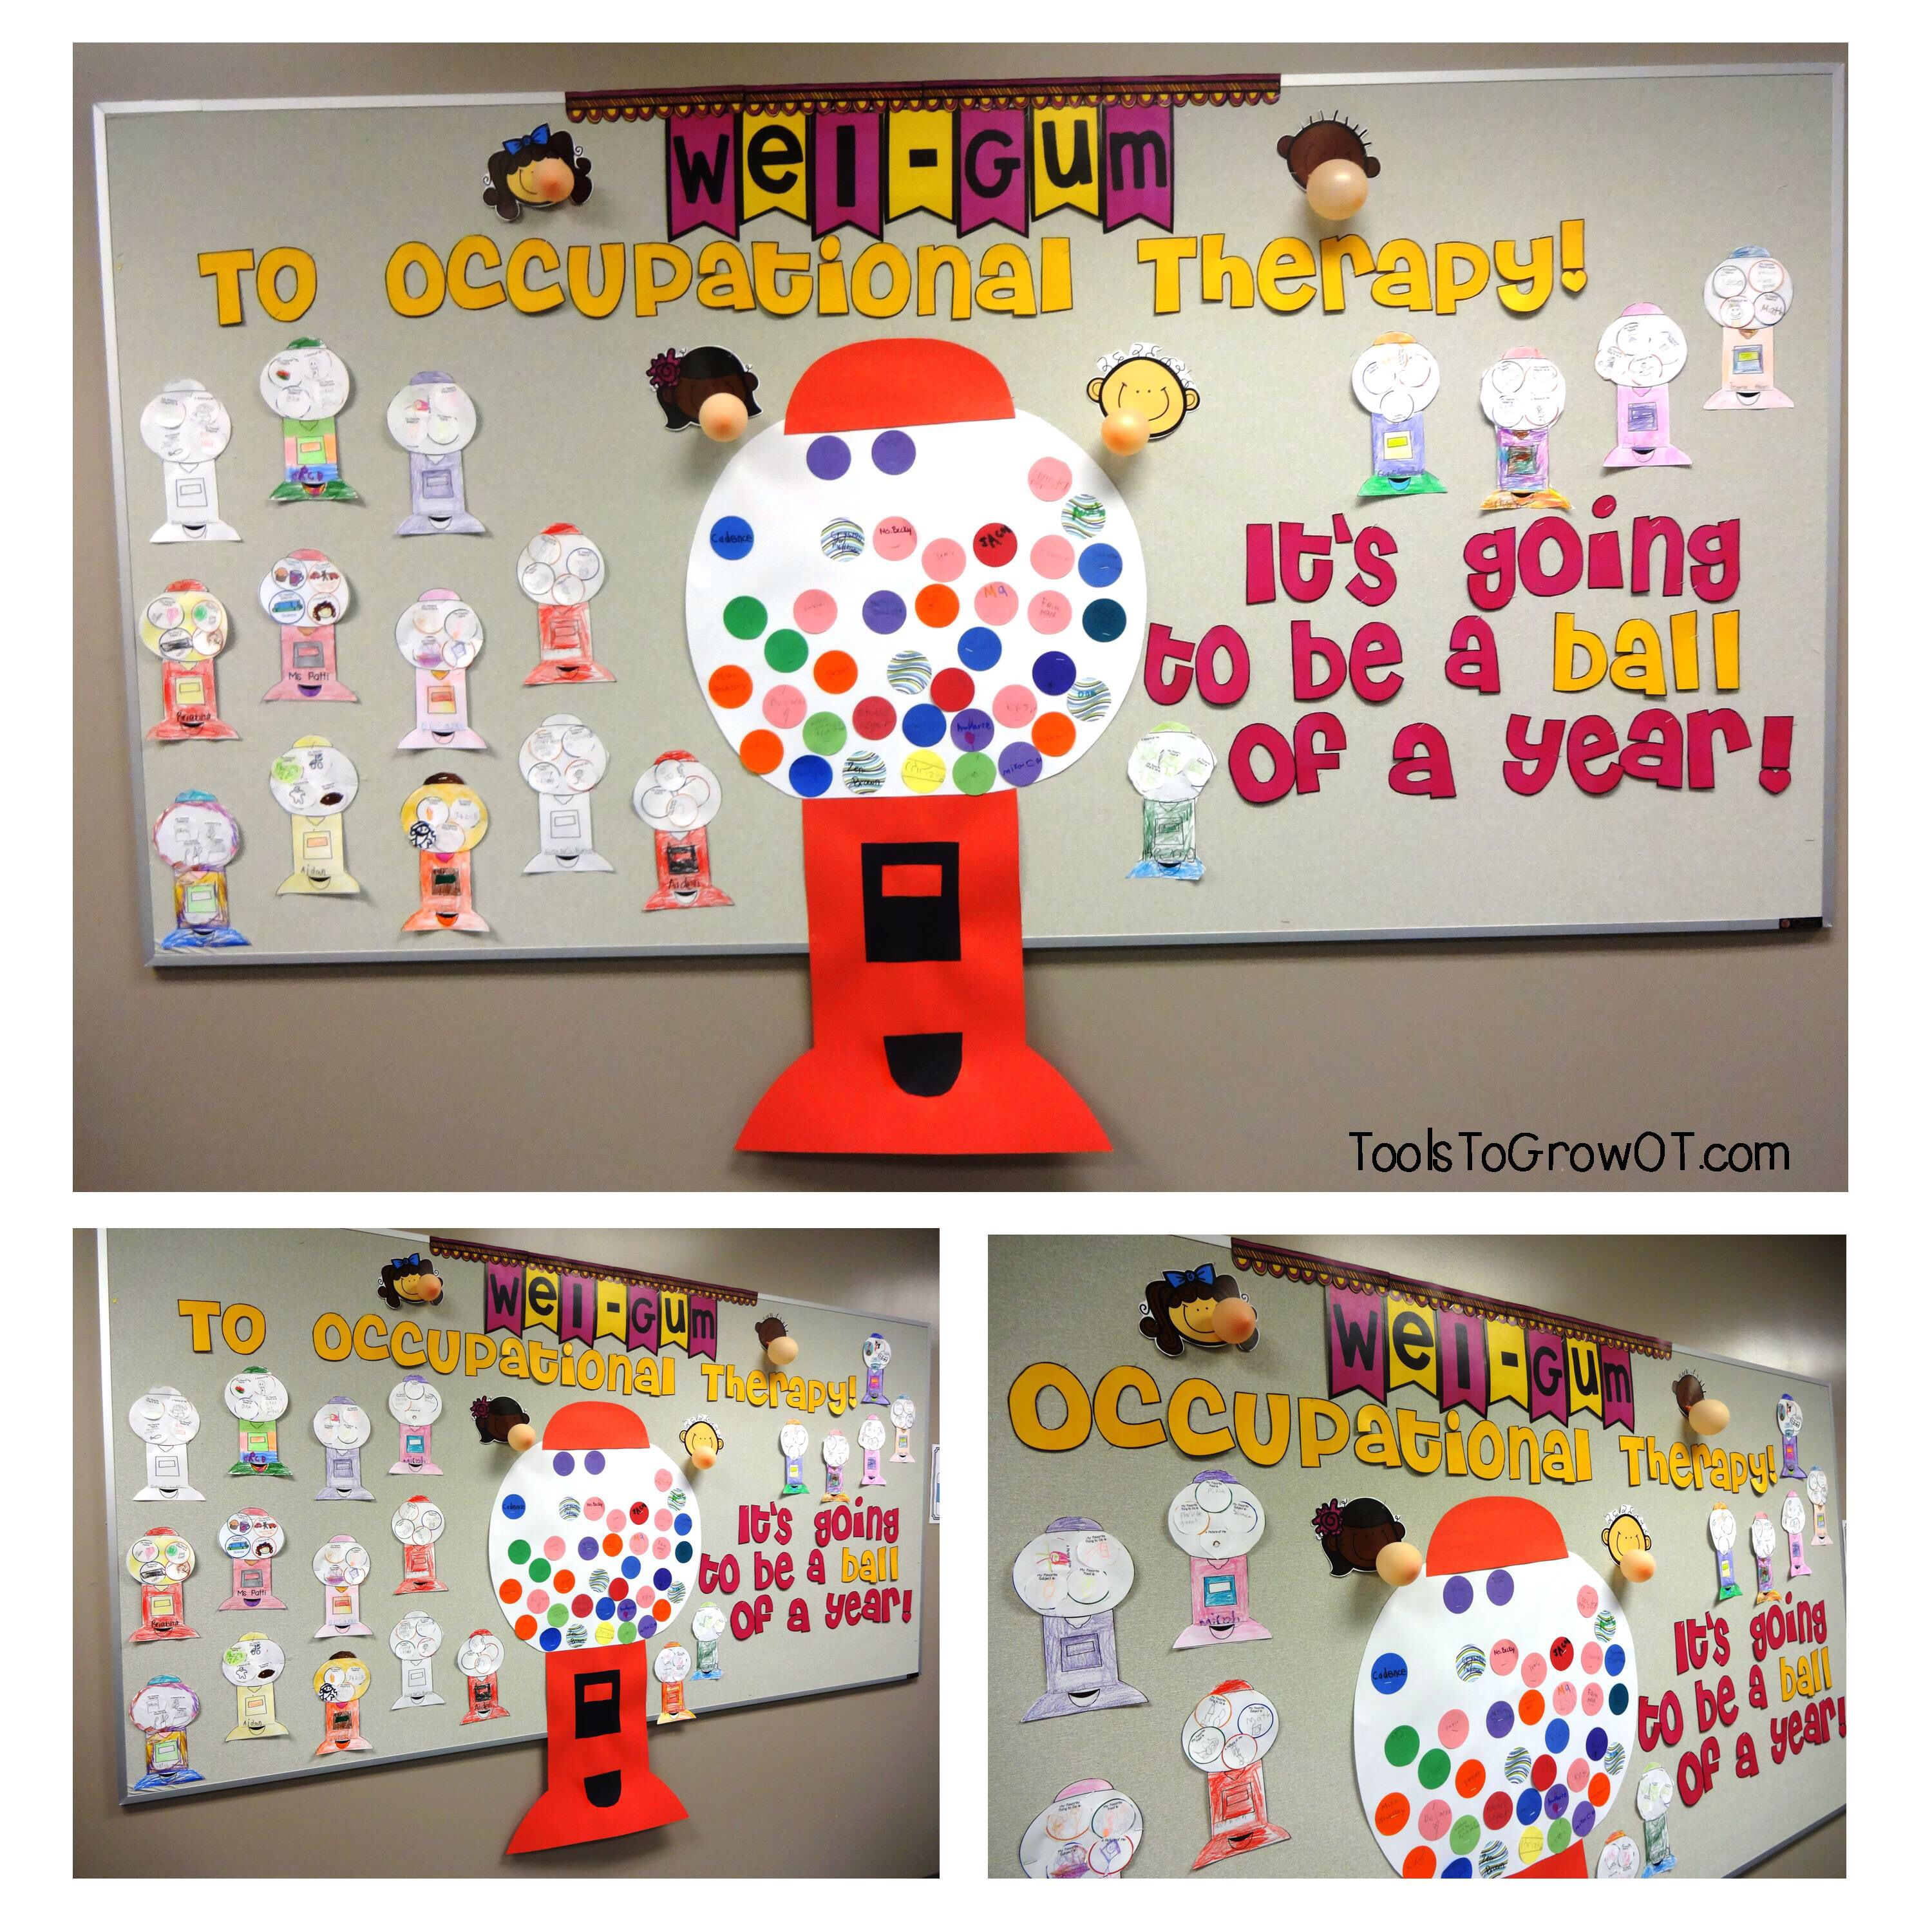 Back To School Occupational Therapy Bulletin Board Wel Gum To Occupational Therapy It S Going